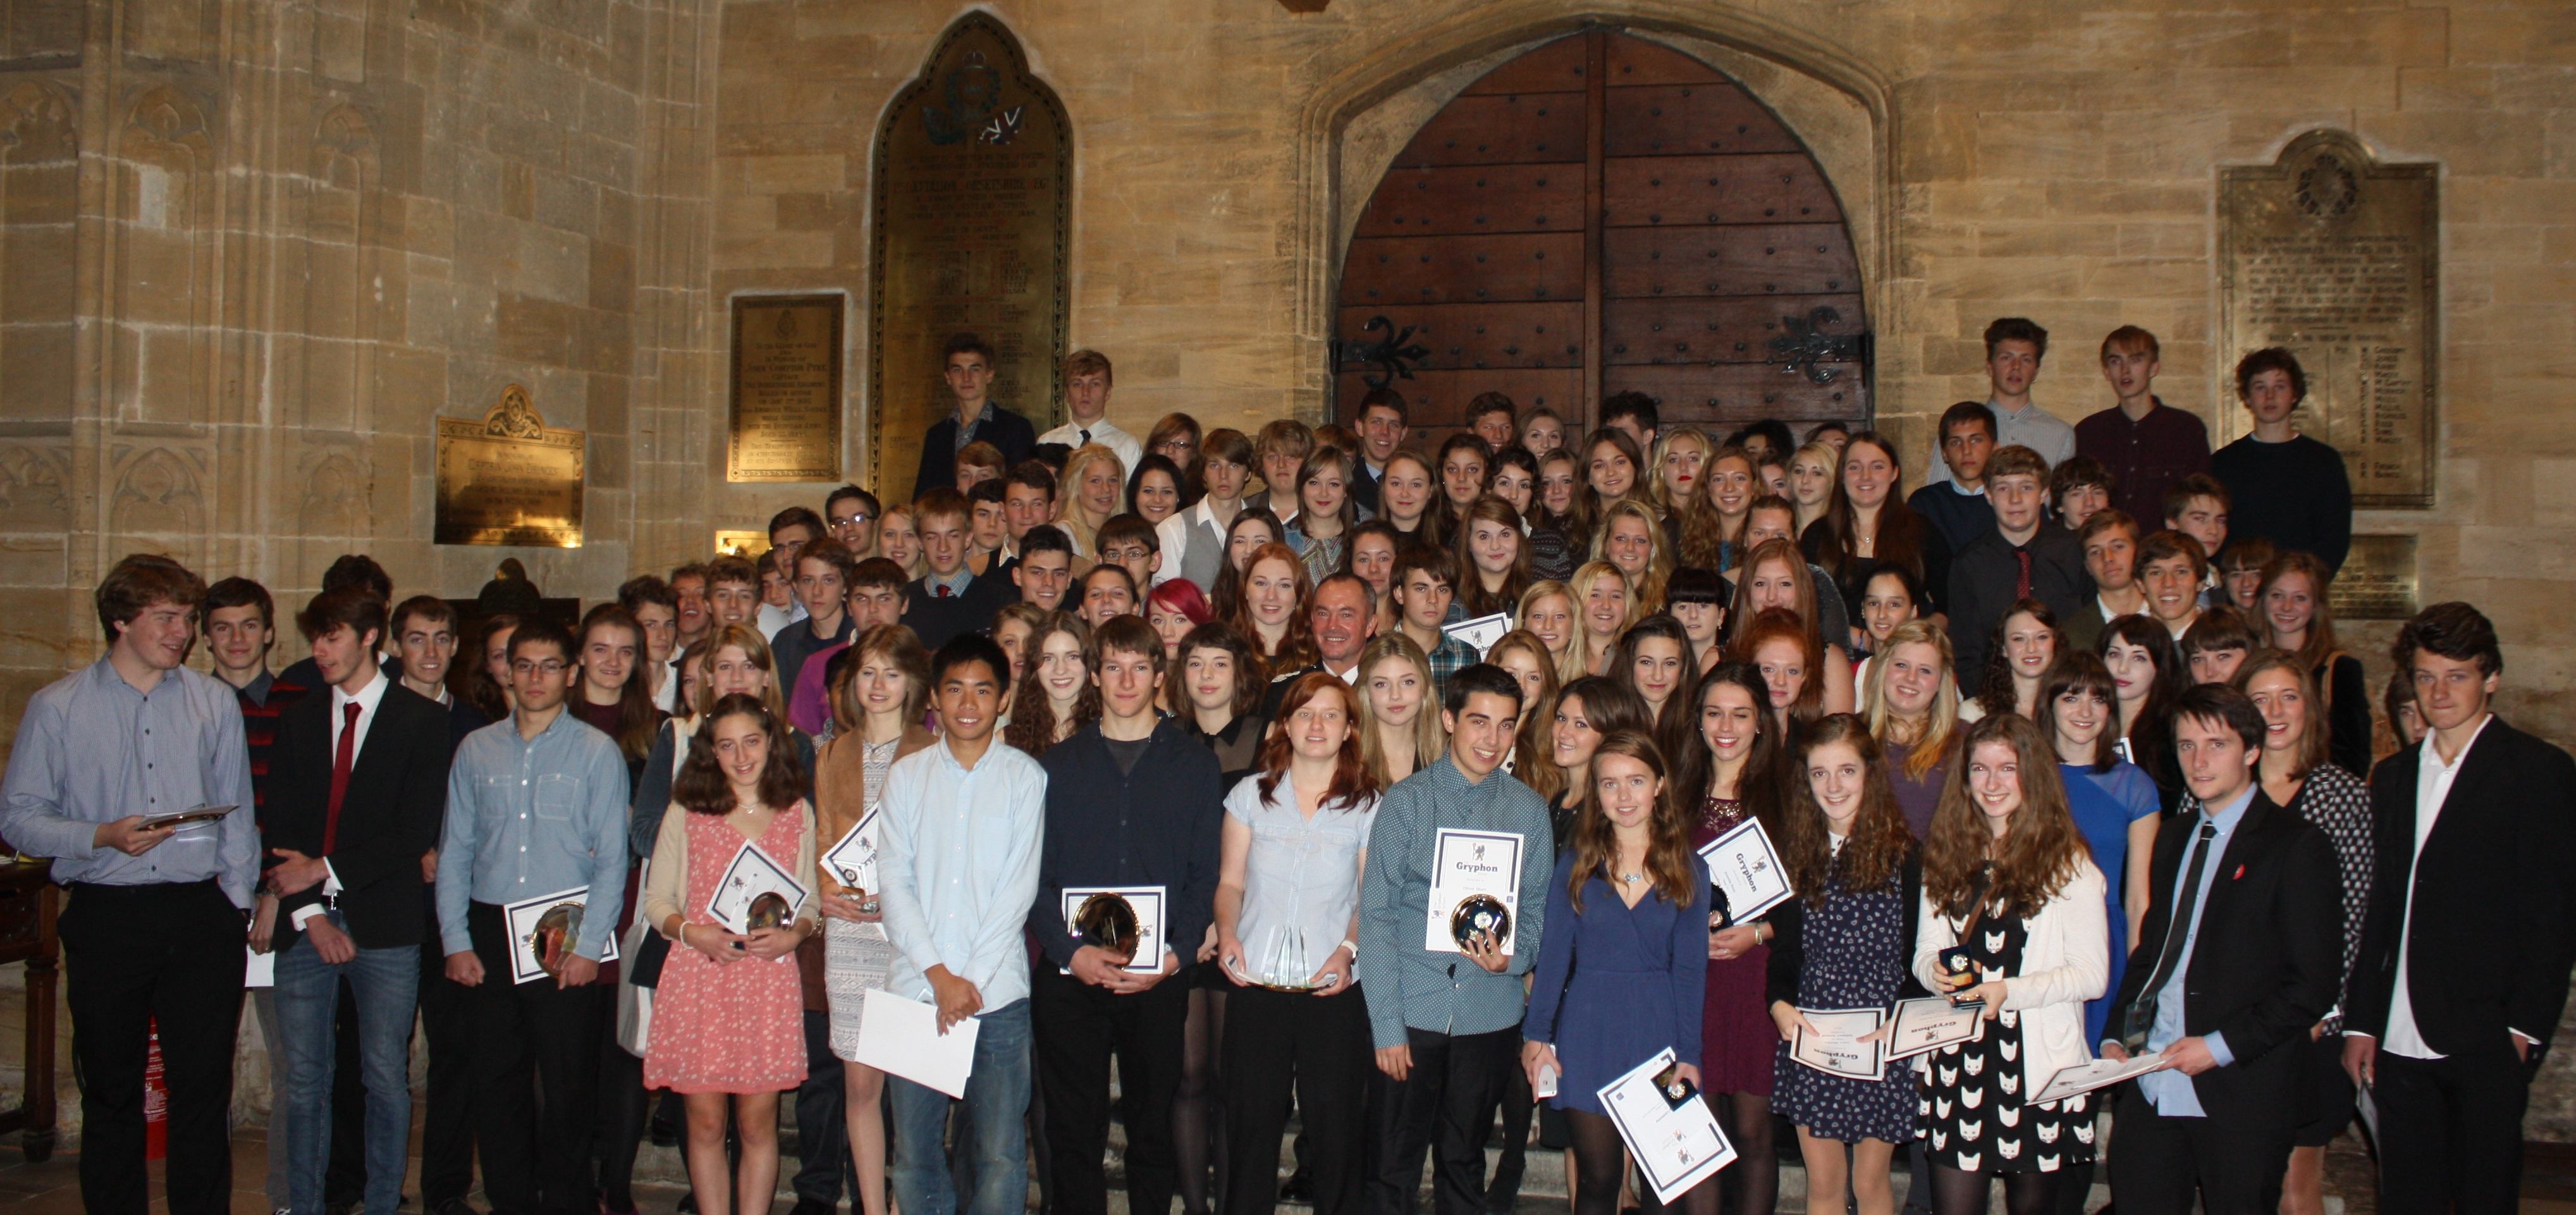 Award Winners in Sherborne Abbey 2013 Cropped